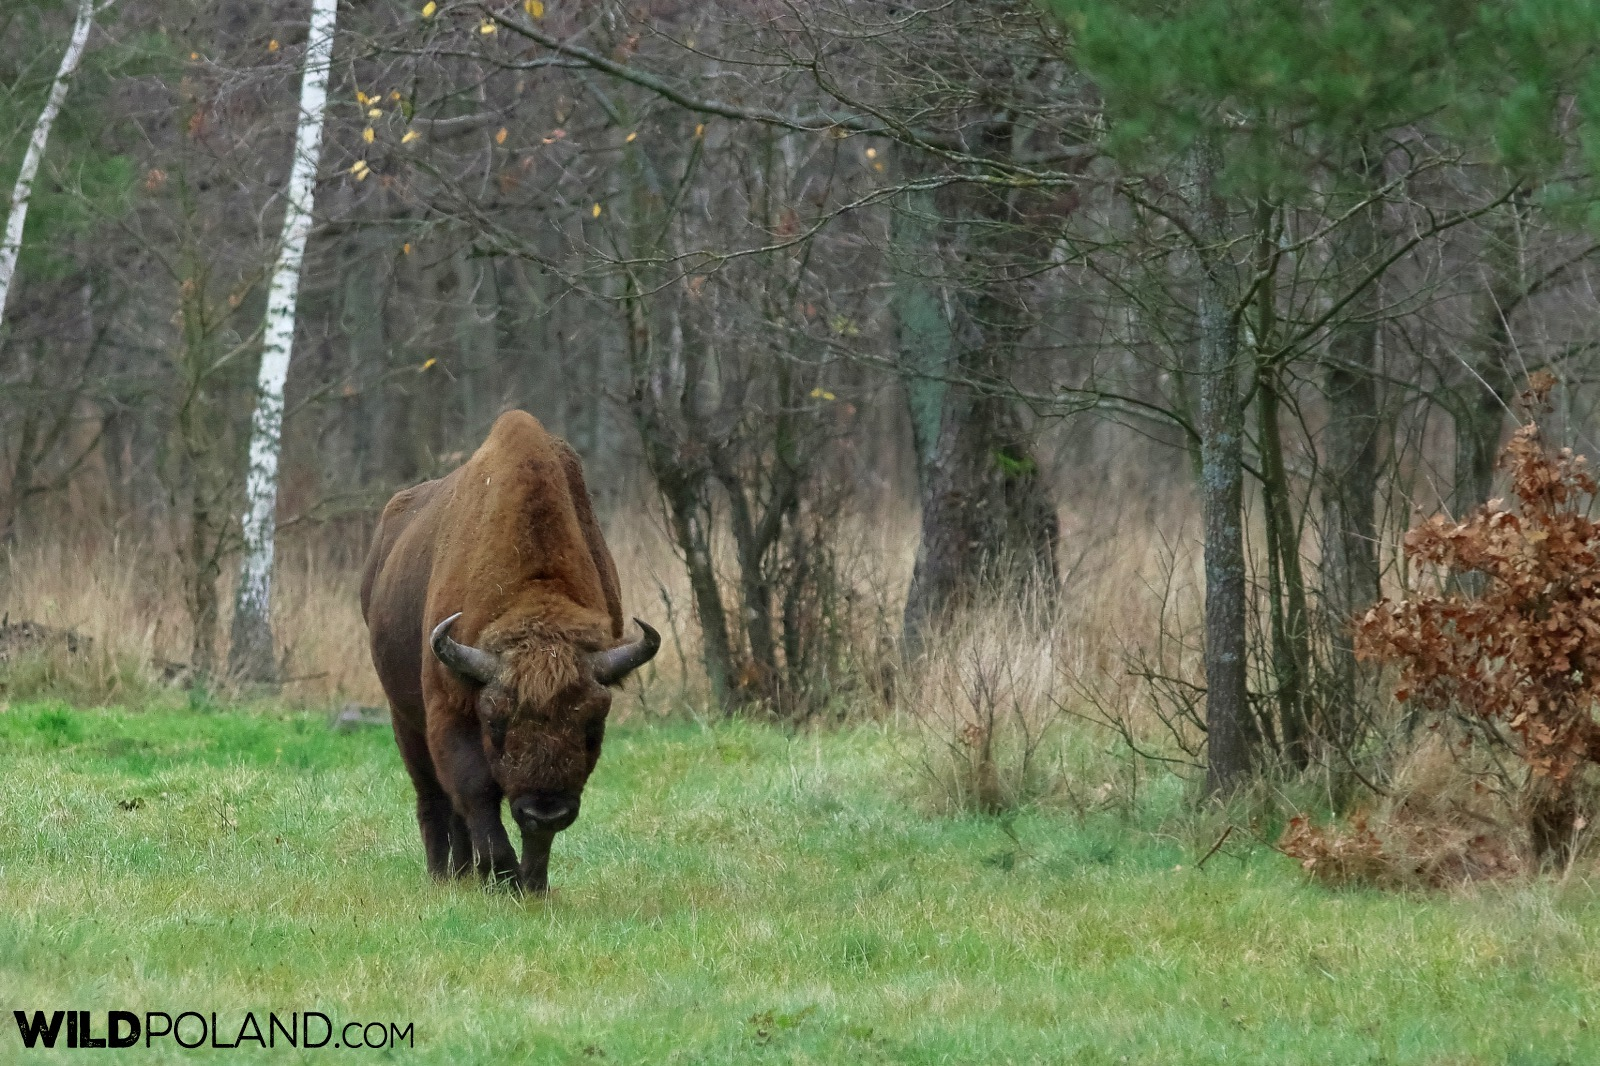 European Bison in the Białowieża Forest, photo by Andrzej Petryna